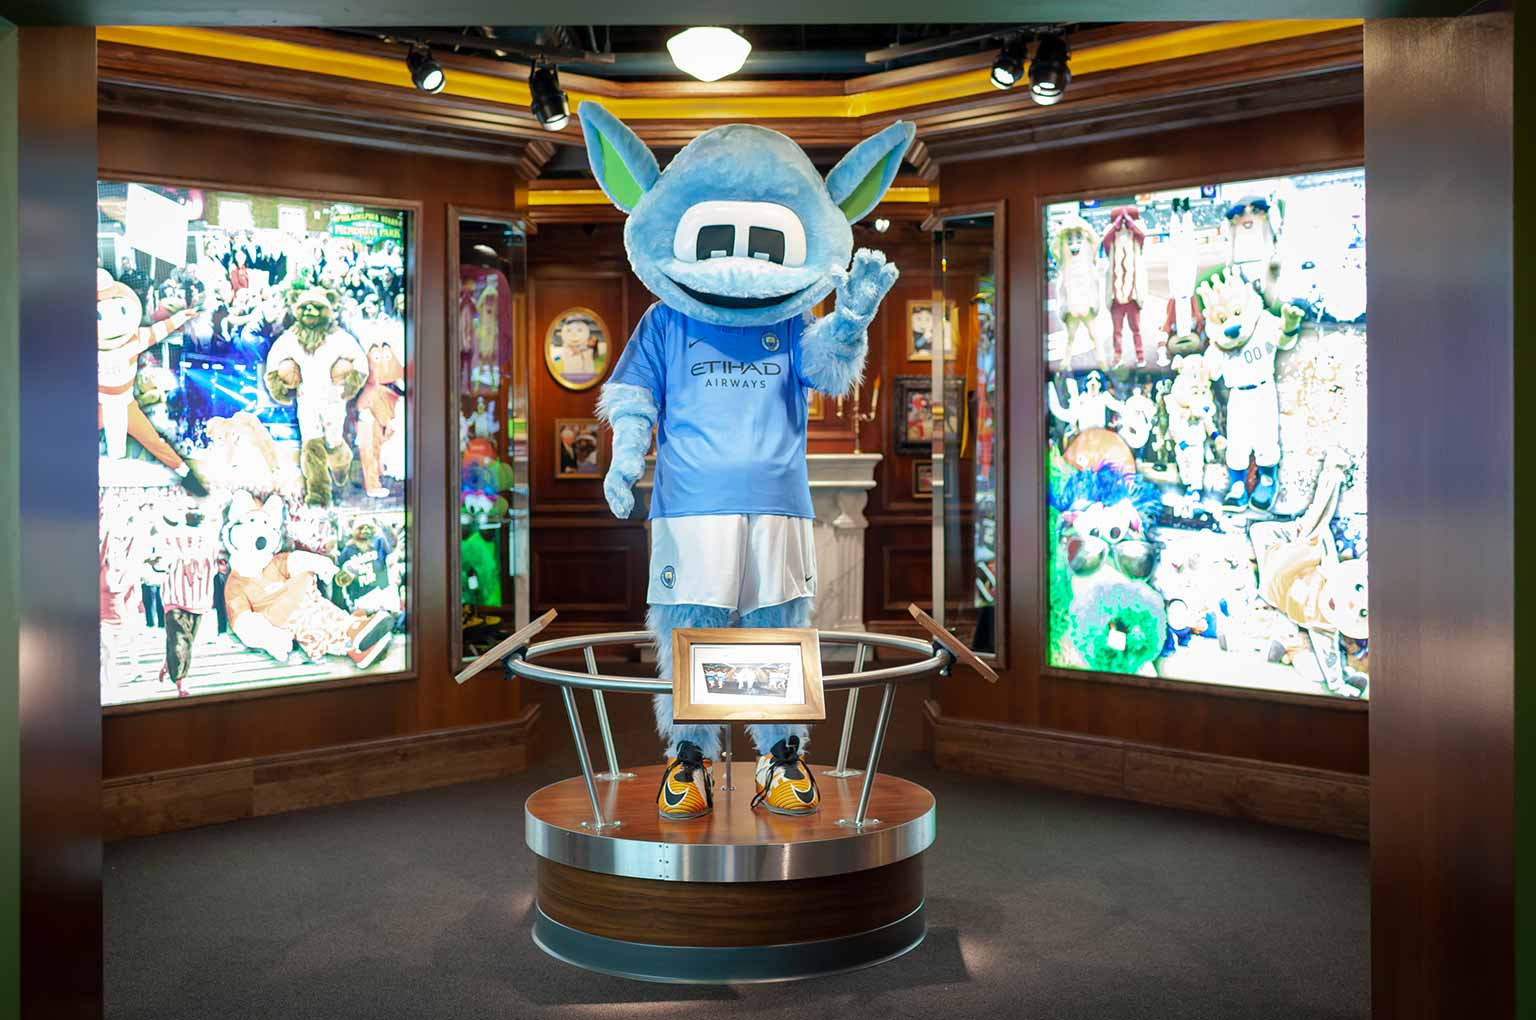 Mascot Hall Fame Interactive Children's Museum